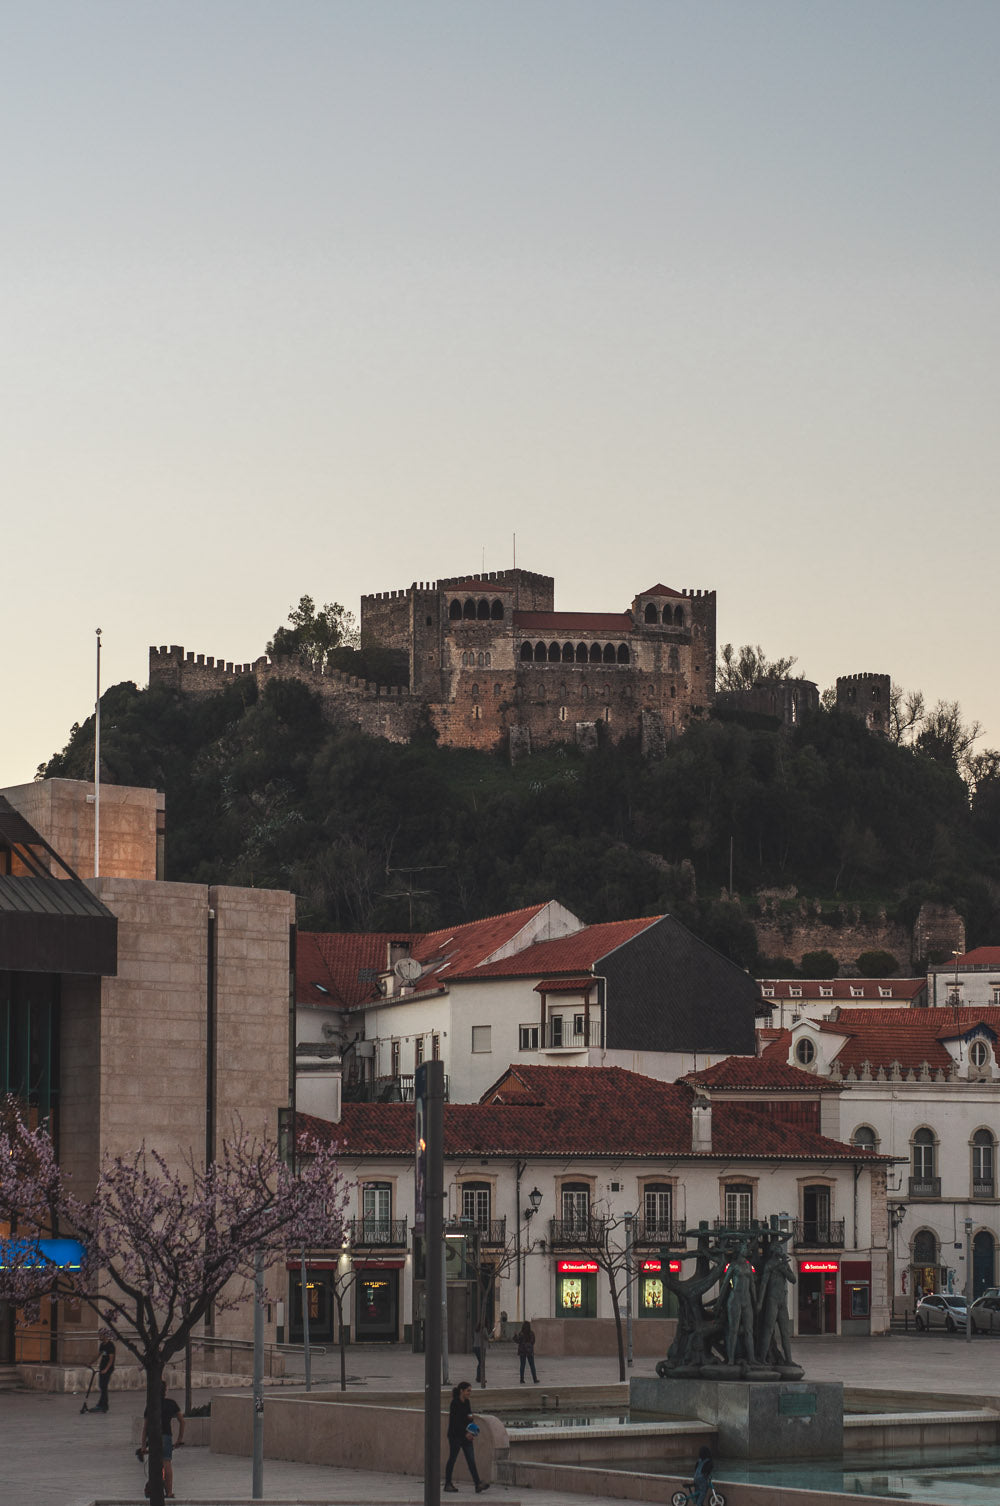 A view of the castle from the center, in the city of Leiria, Portugal